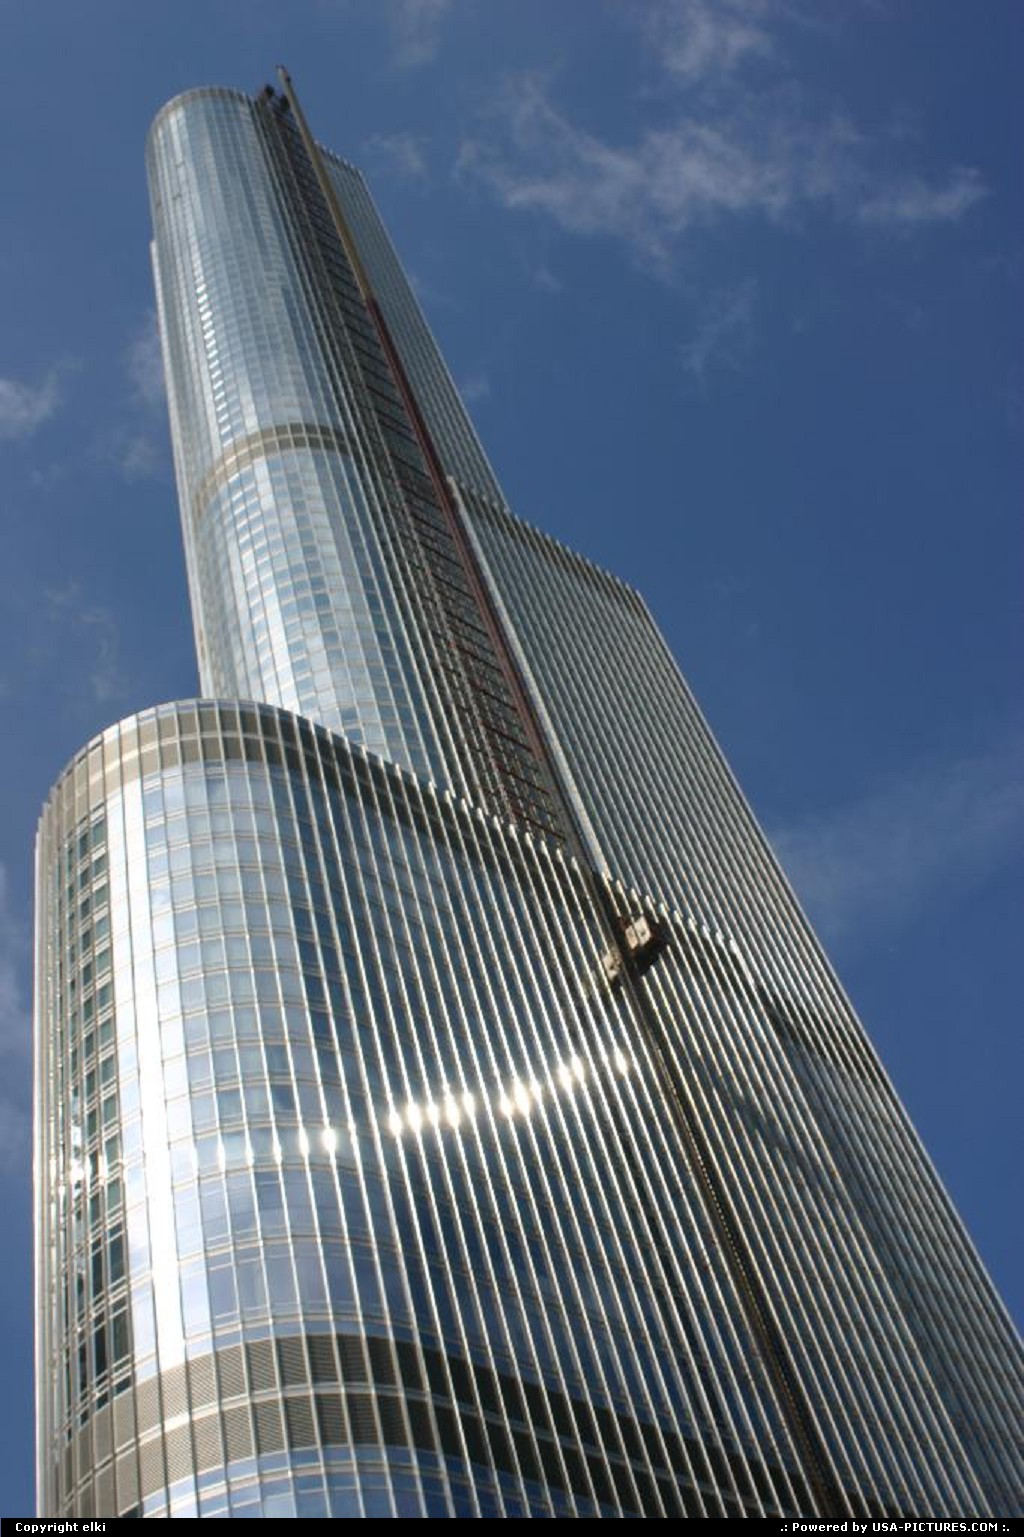 Picture by elki:ChicagoIllinoistrump tower chicago